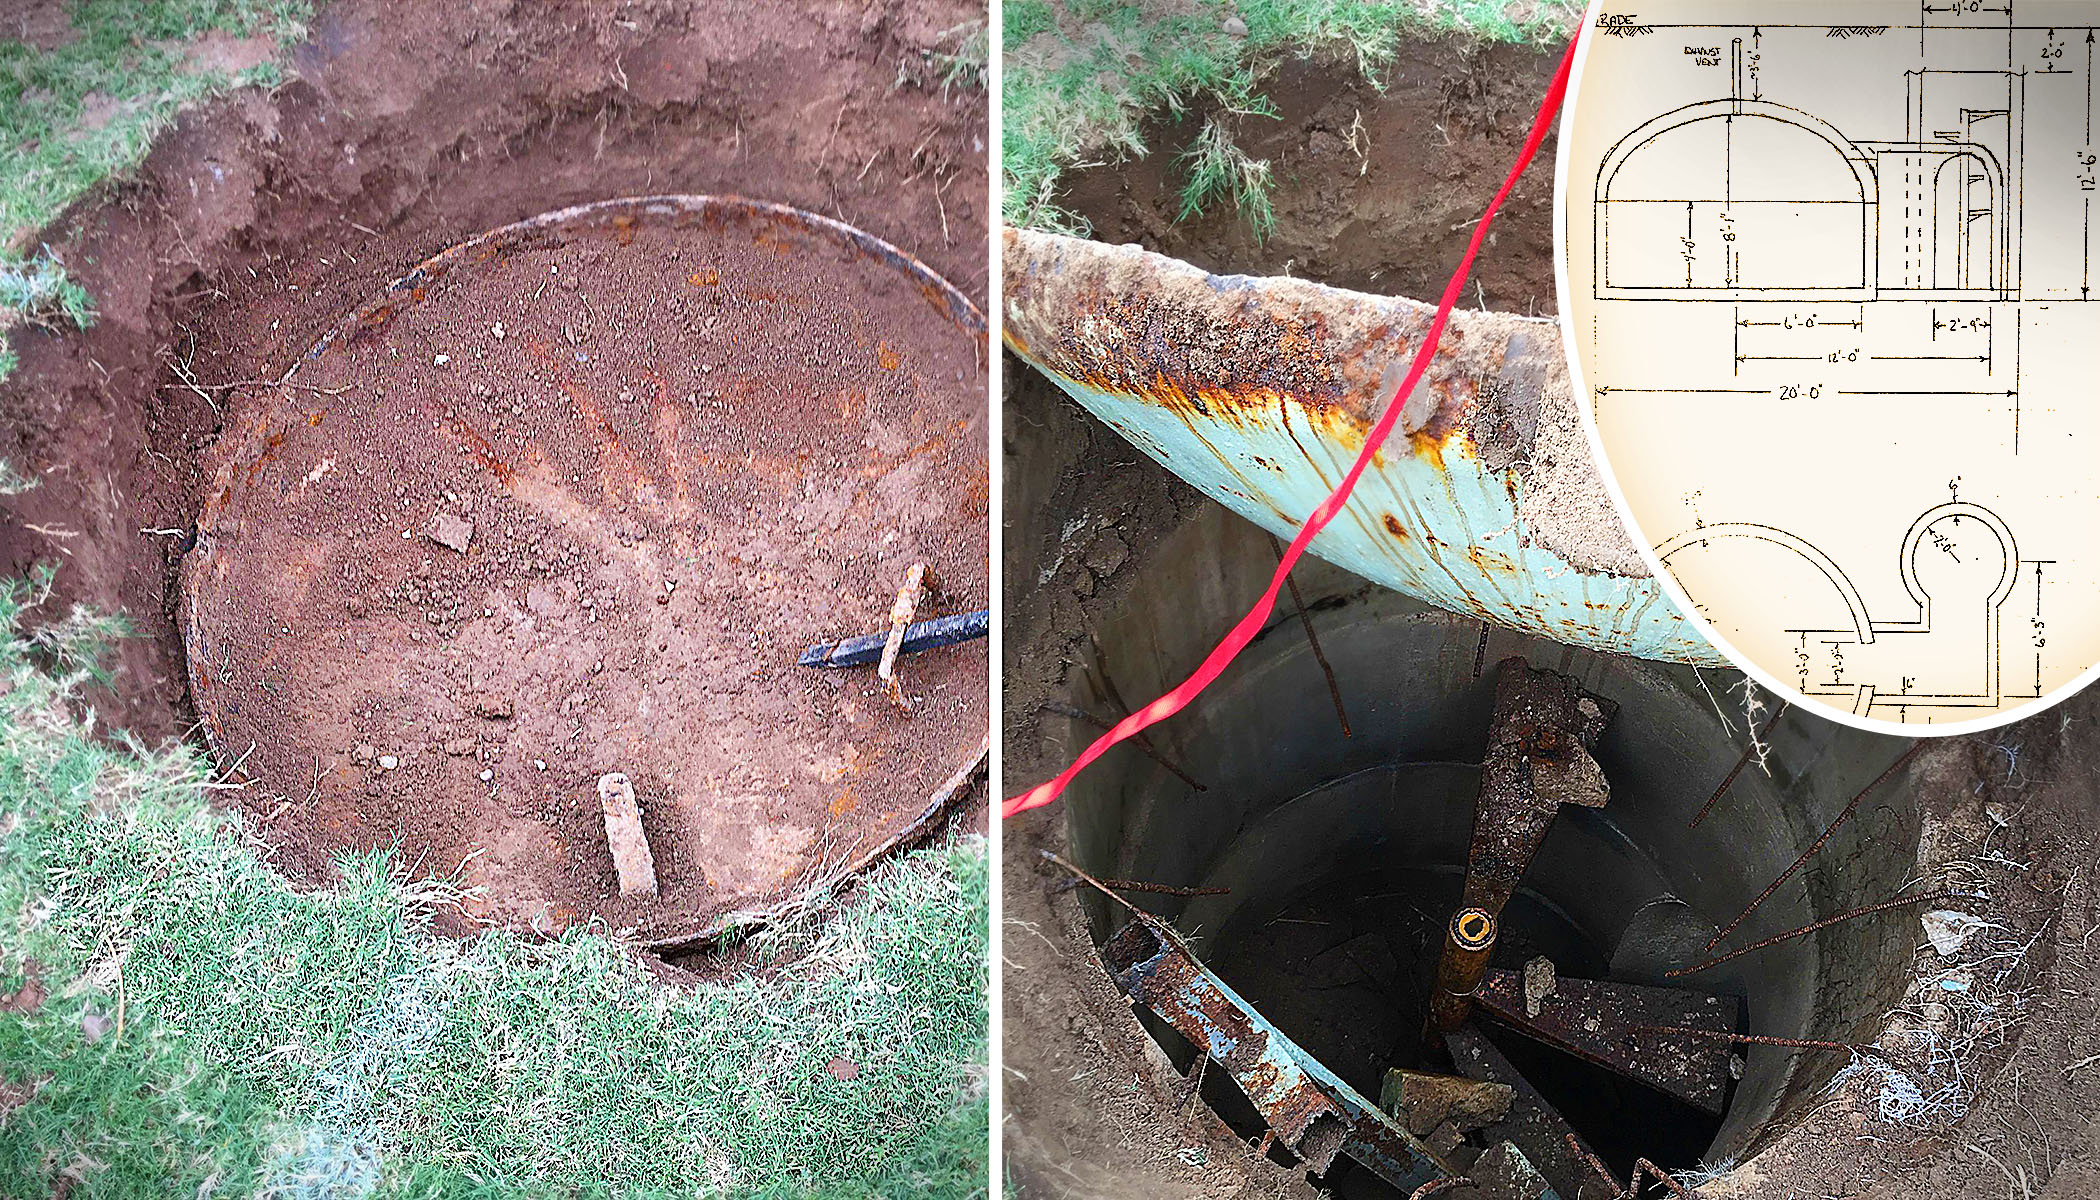 New Home Owner Is Told There May Be a Cold War-era Bunker in His Backyard, So He Starts Digging